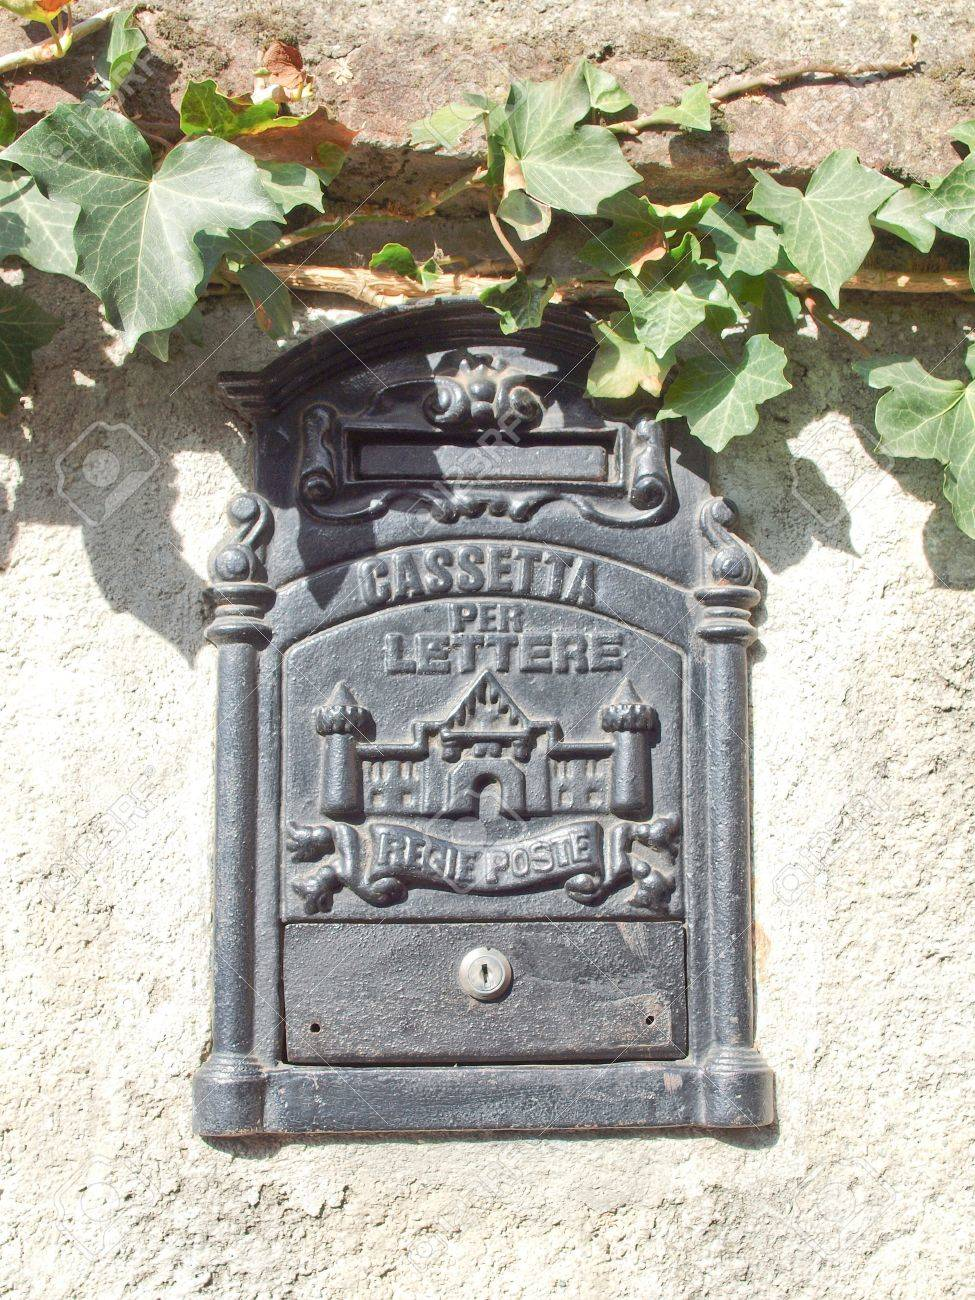 Ancient Italian Mail Box With Text Cassetta Delle Lettere Regie Poste Meaning Royal Letter